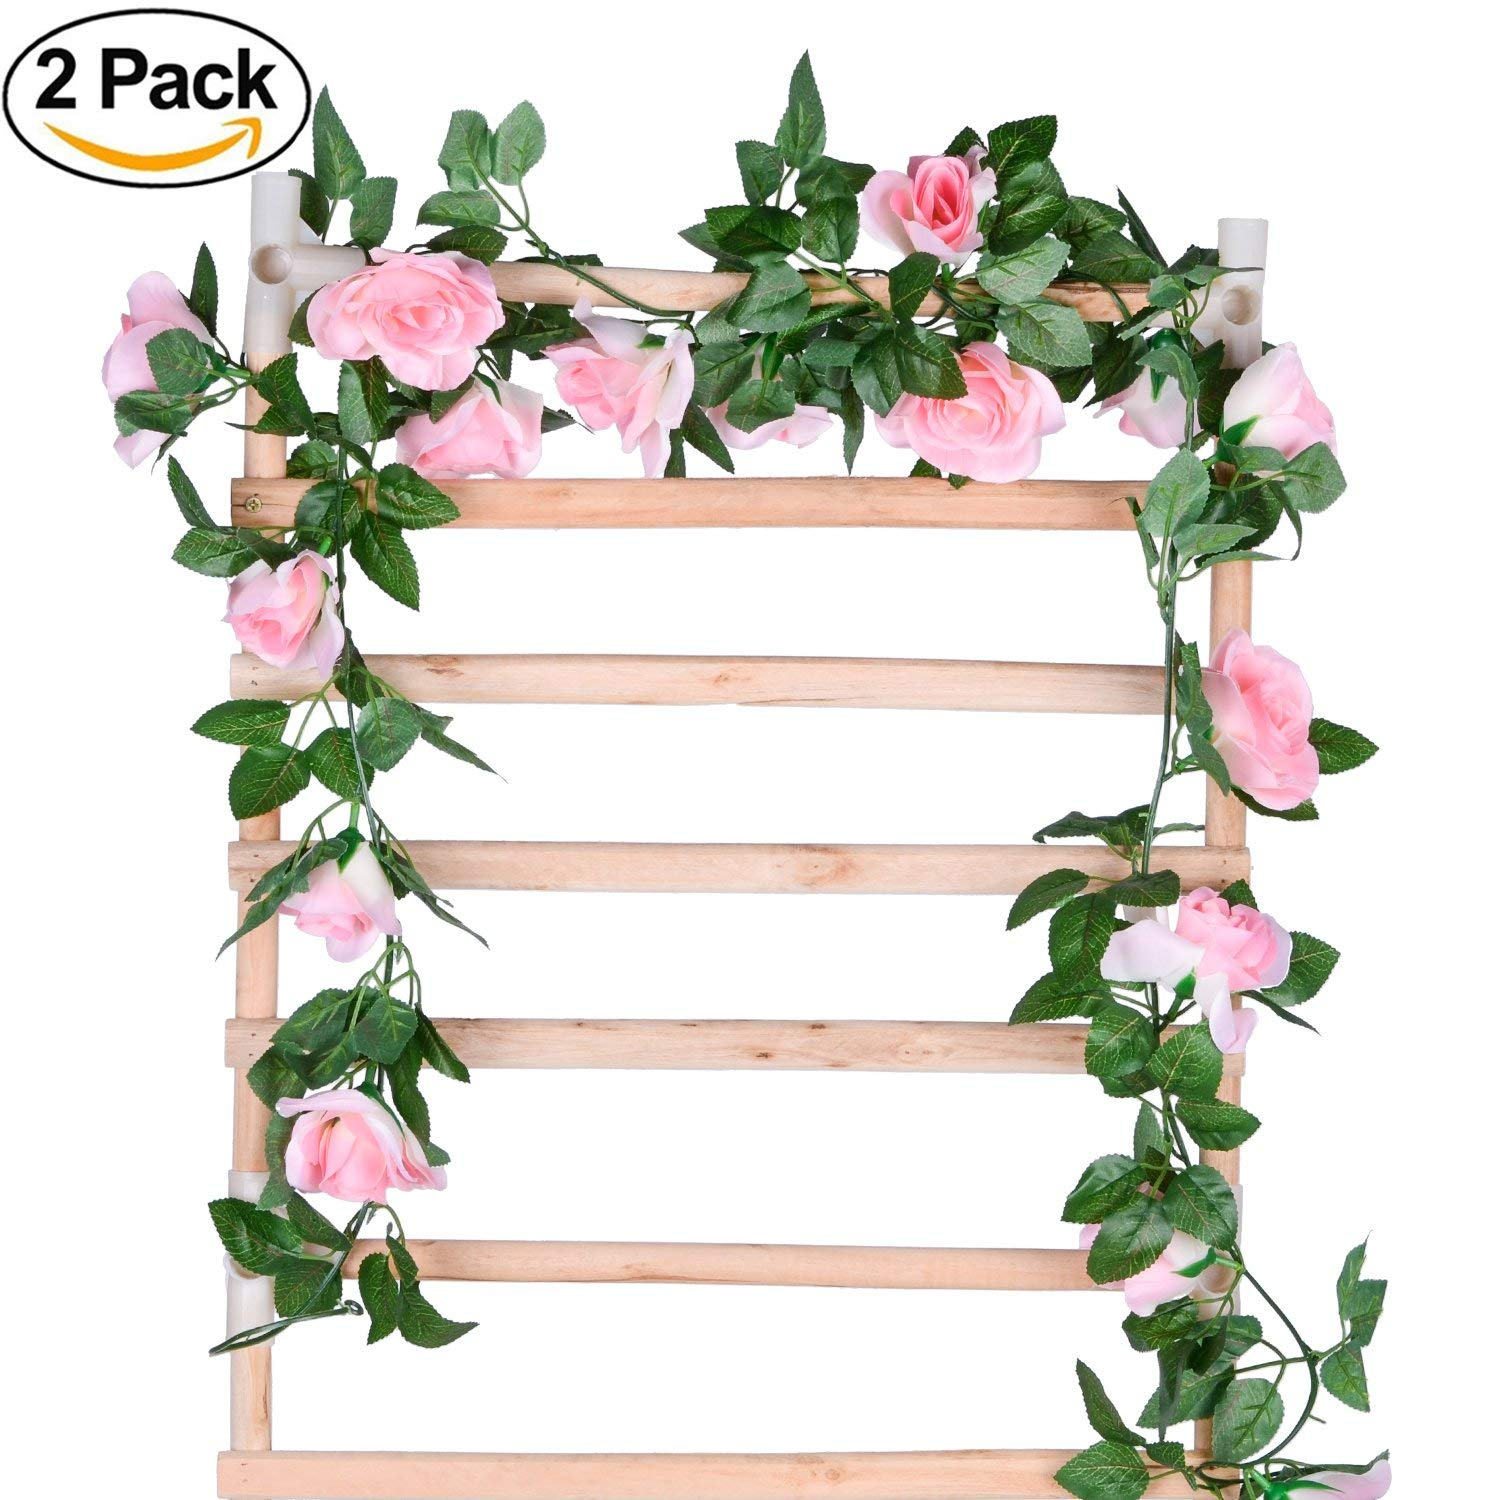 Artificial Patio Planter with Pink /& White Flowers Set of 2